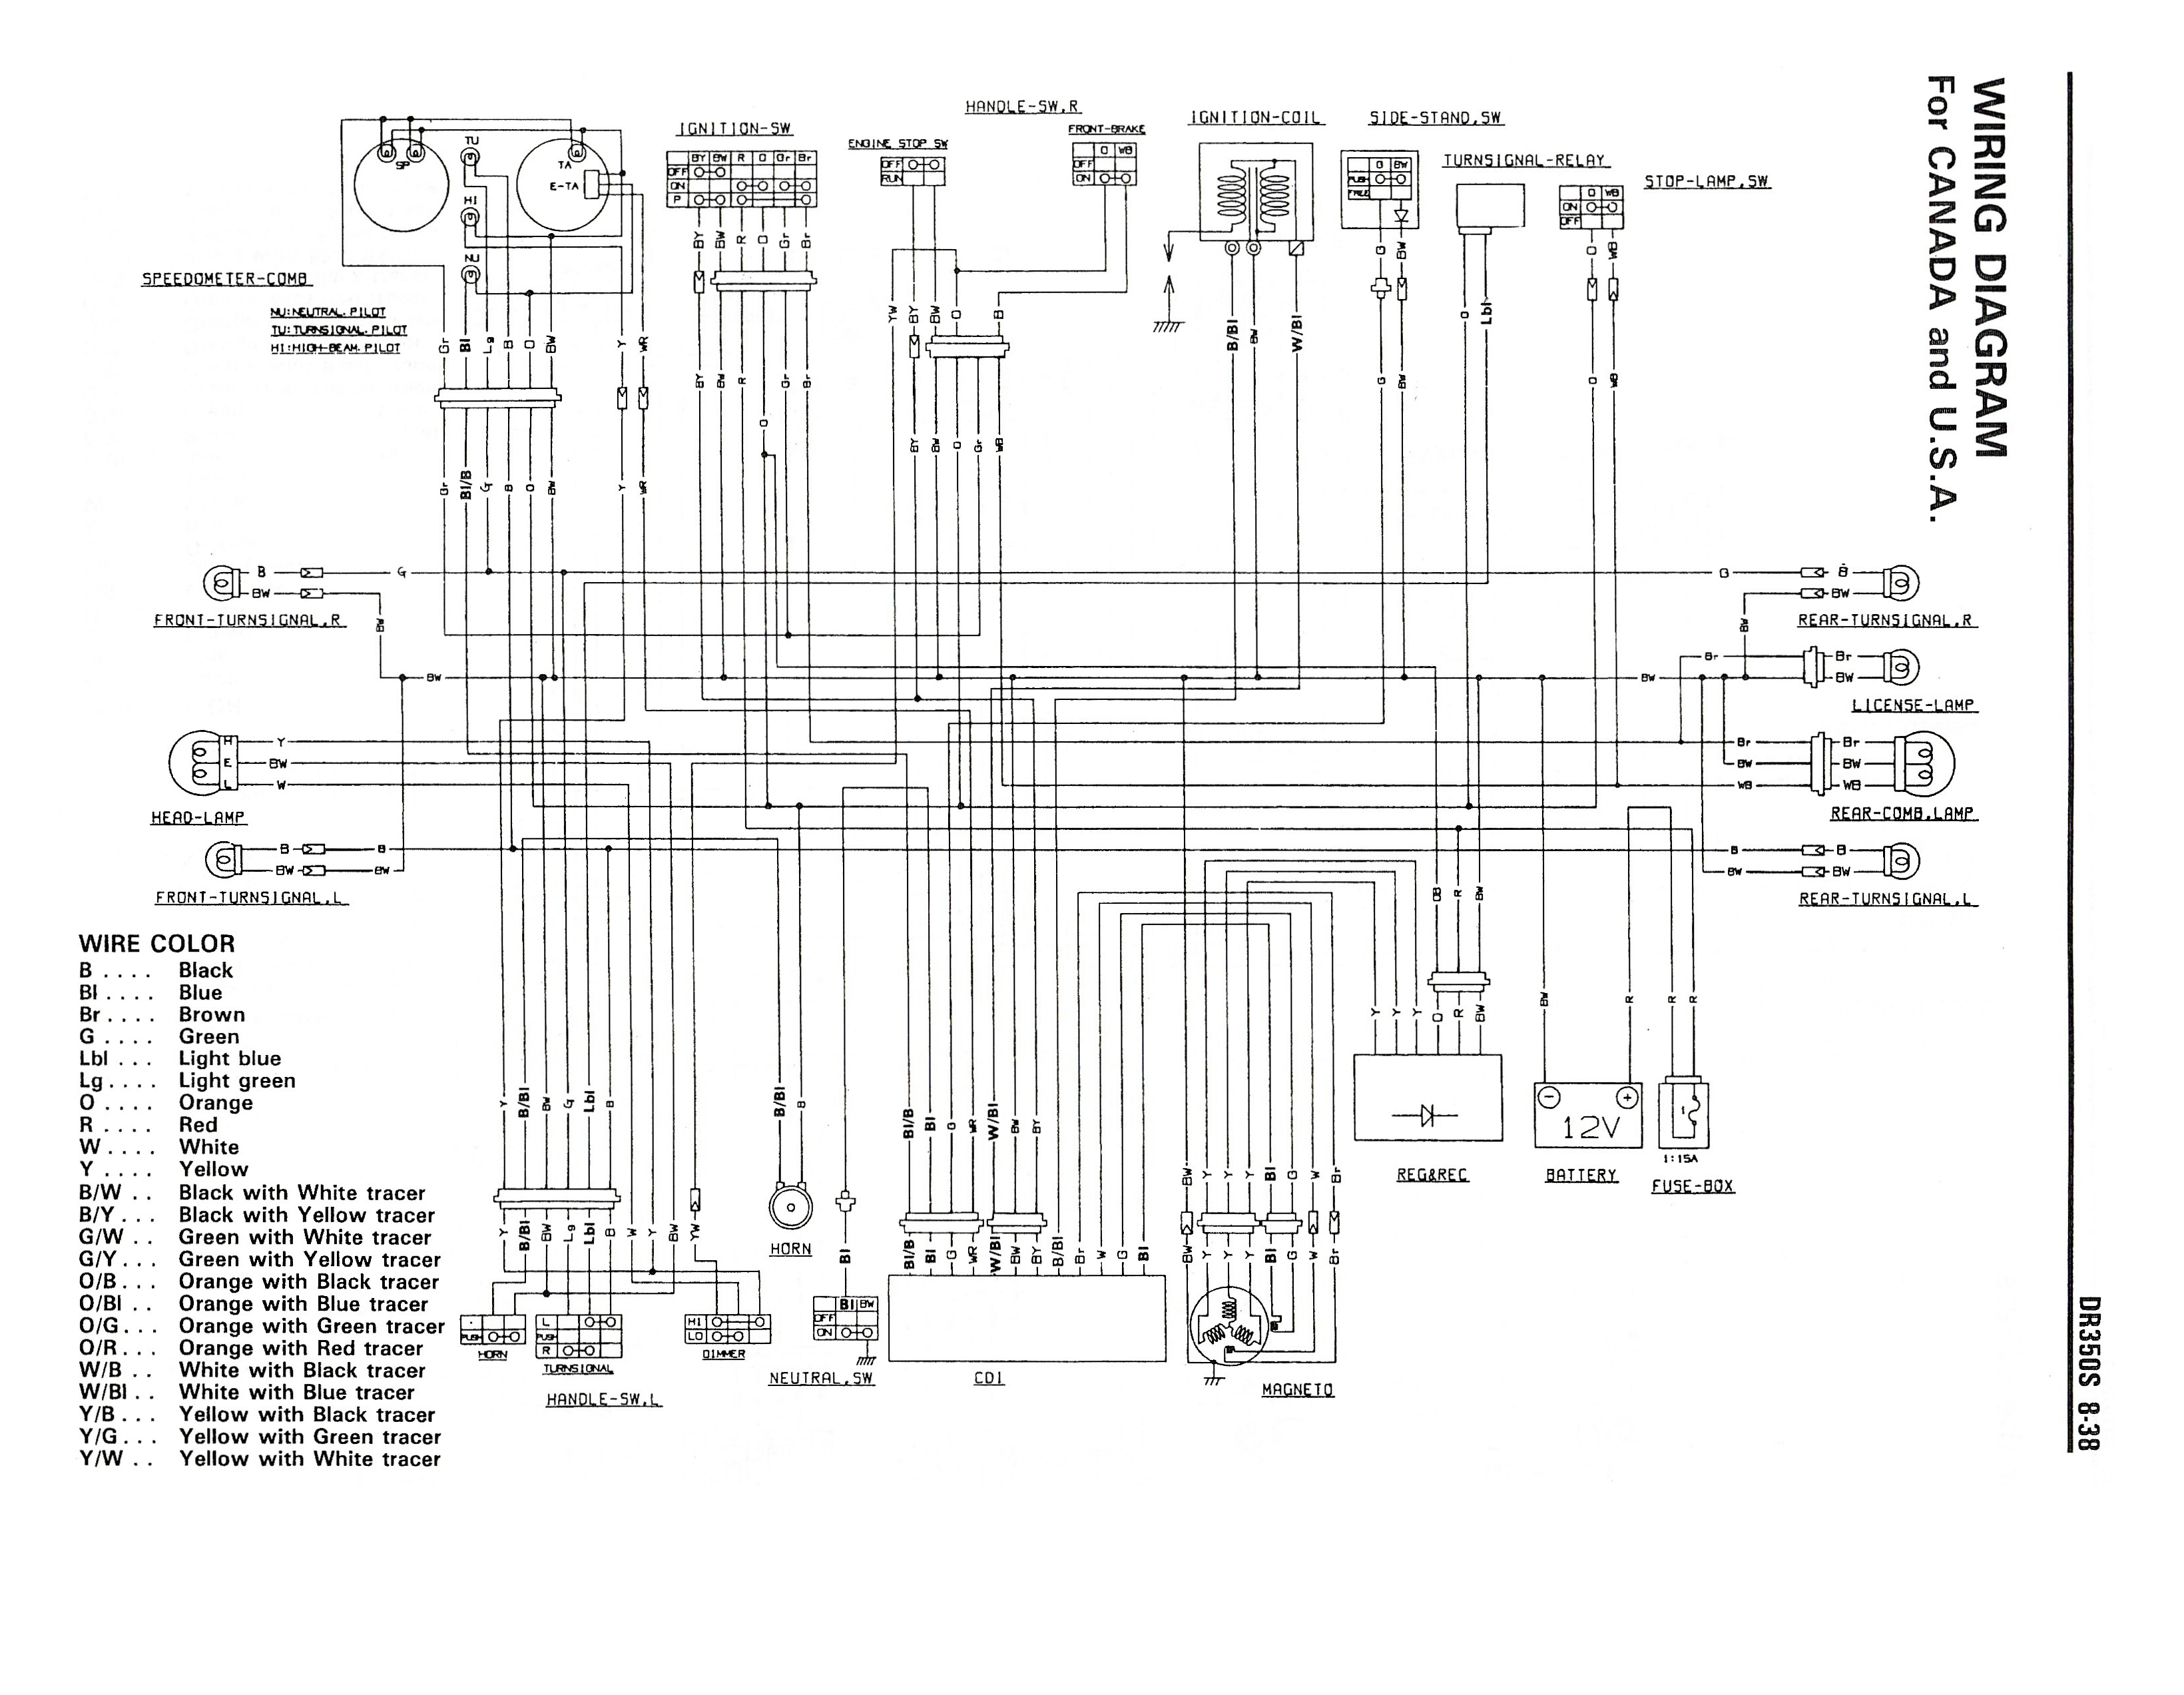 wiring diagram for the dr350 s (1990 and later models - canada, usa) -  suzuki parts - suzuki dr350 - topics - gregory bender  74.124.194.191